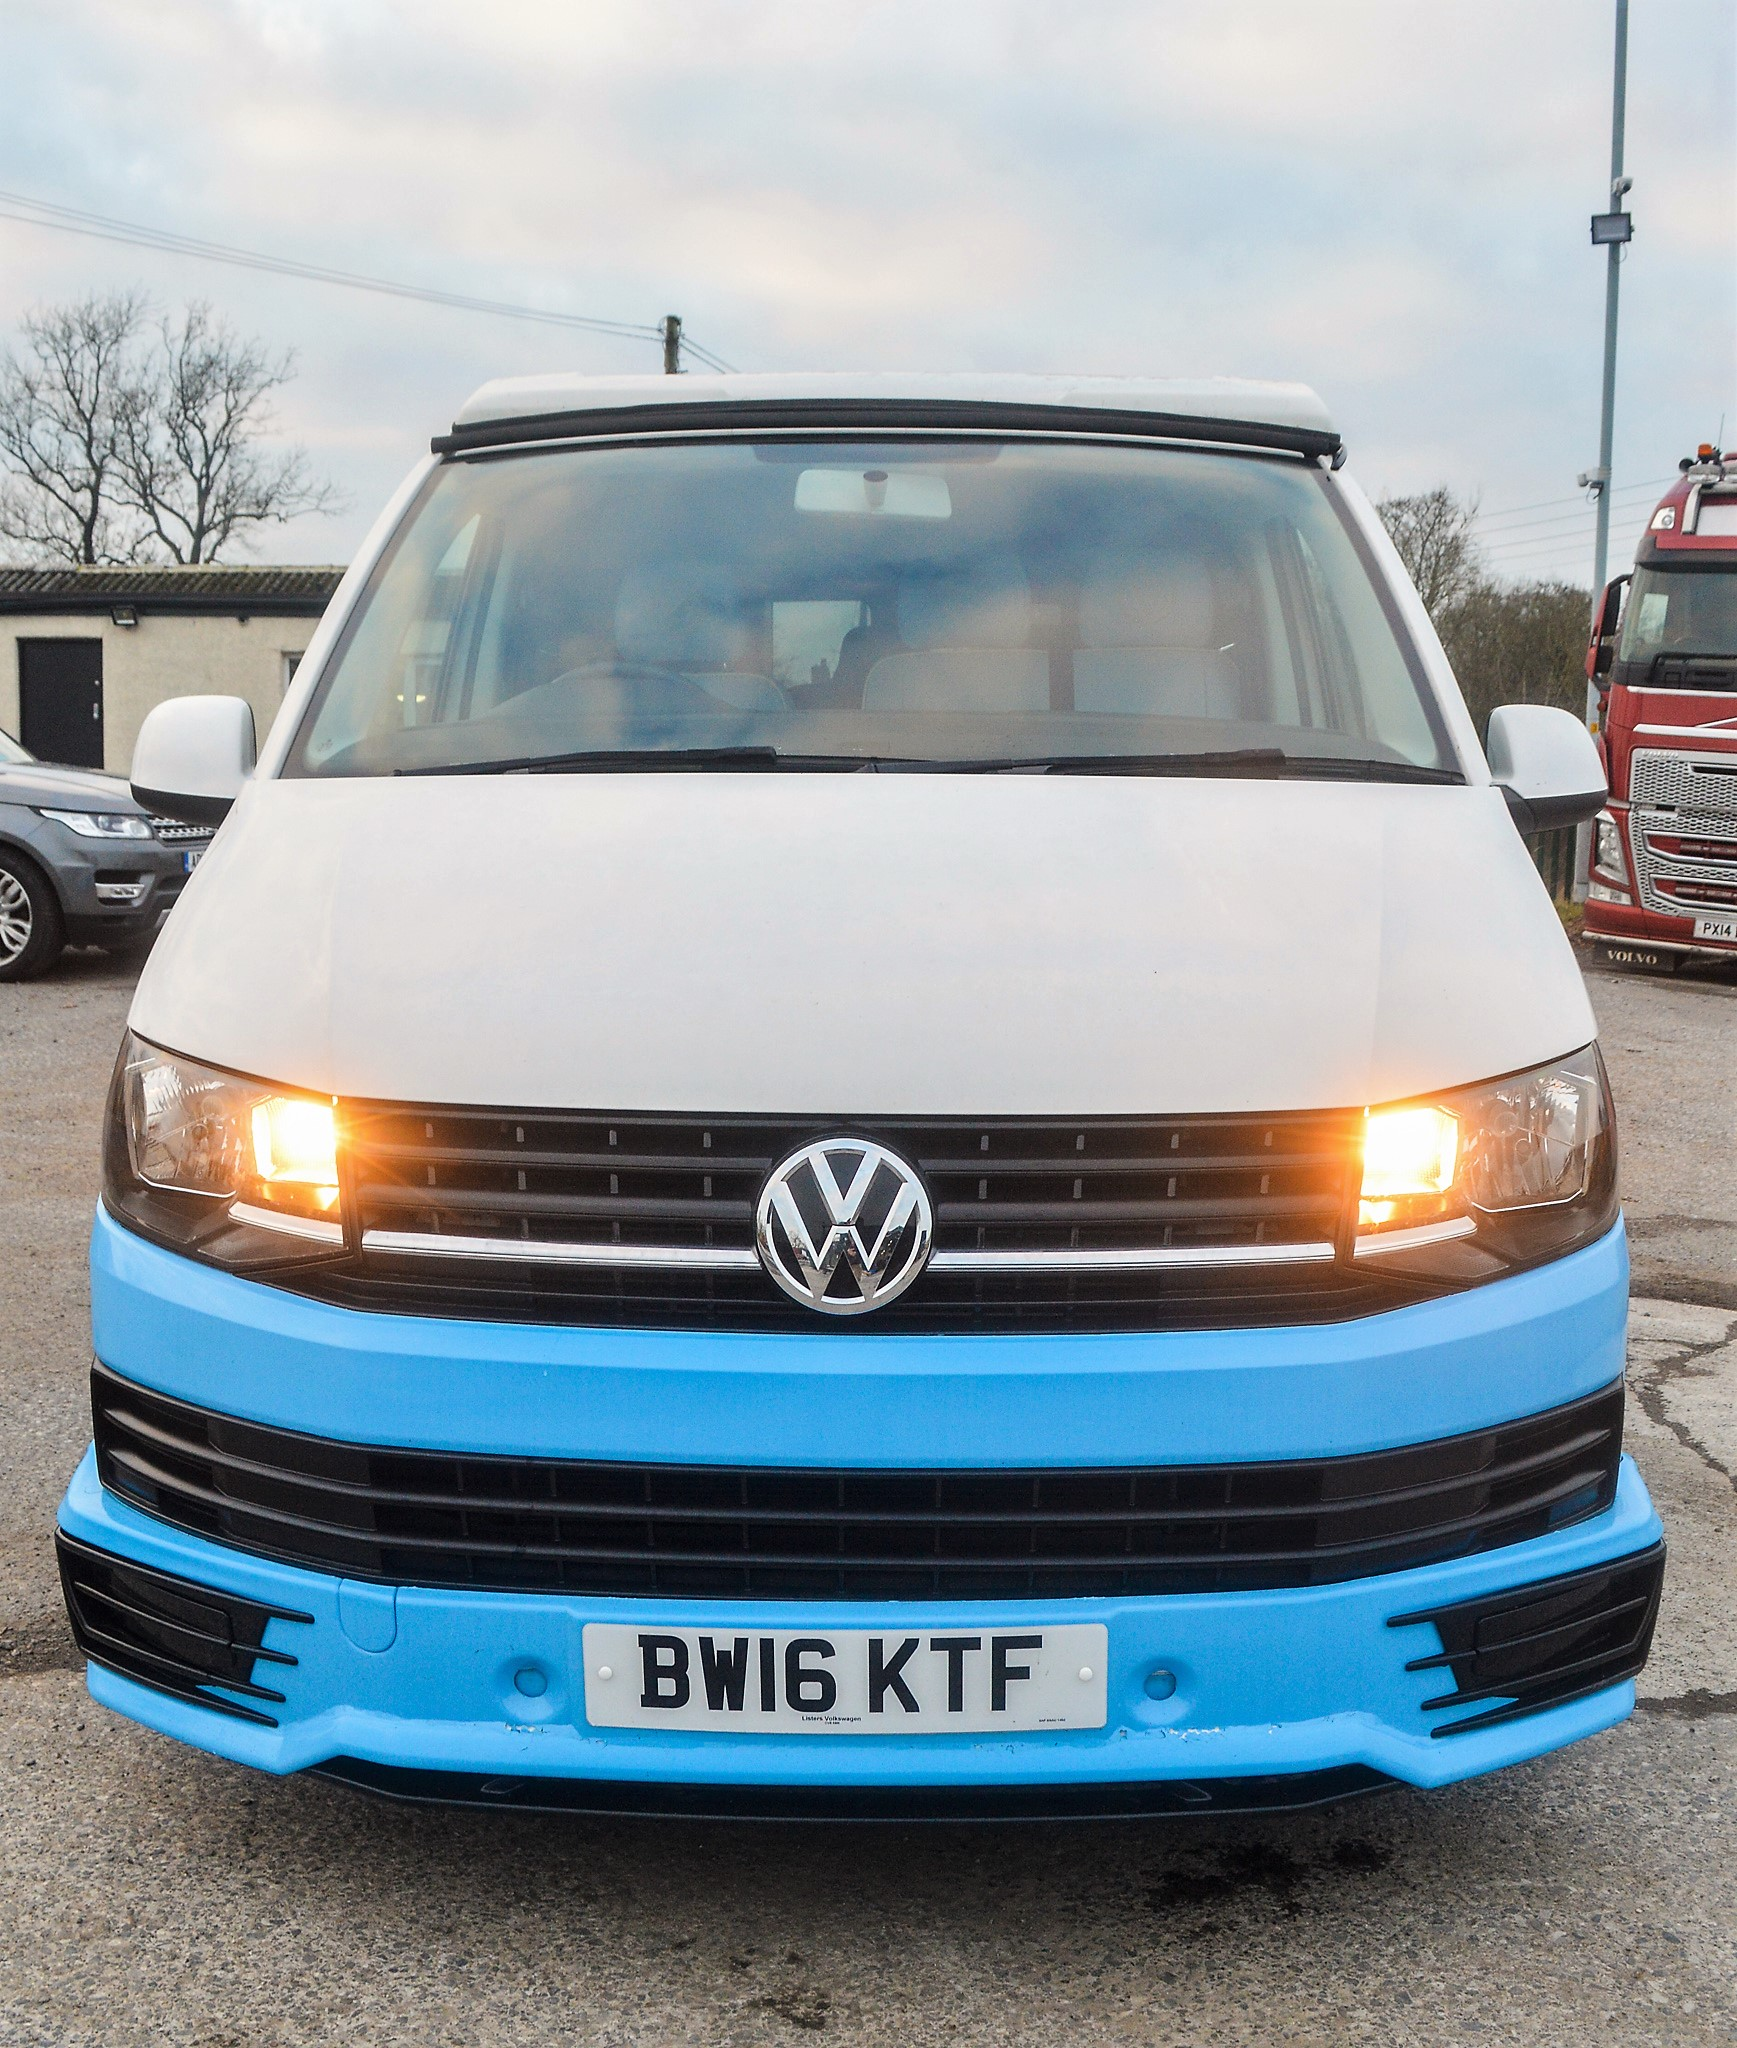 Lot 18 - Volkswagen Transporter T28 S-Line TDi camper van Registration Number: BW16 KTF Date of Registration: